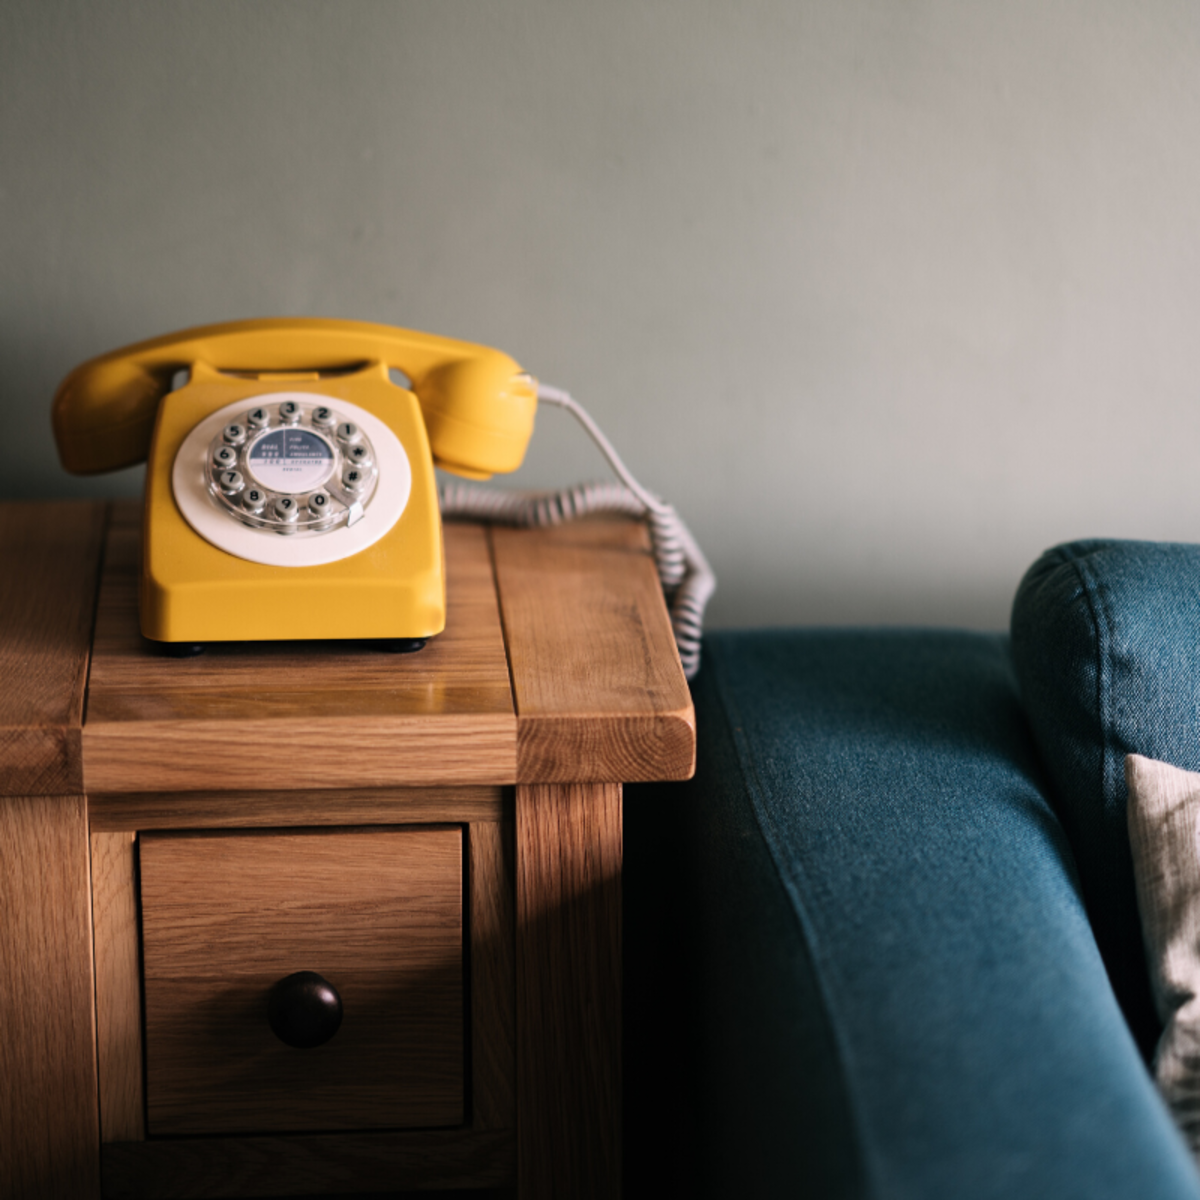 The holidays can be a lonely time for some. A simple phone call or greeting card can make someone's day.